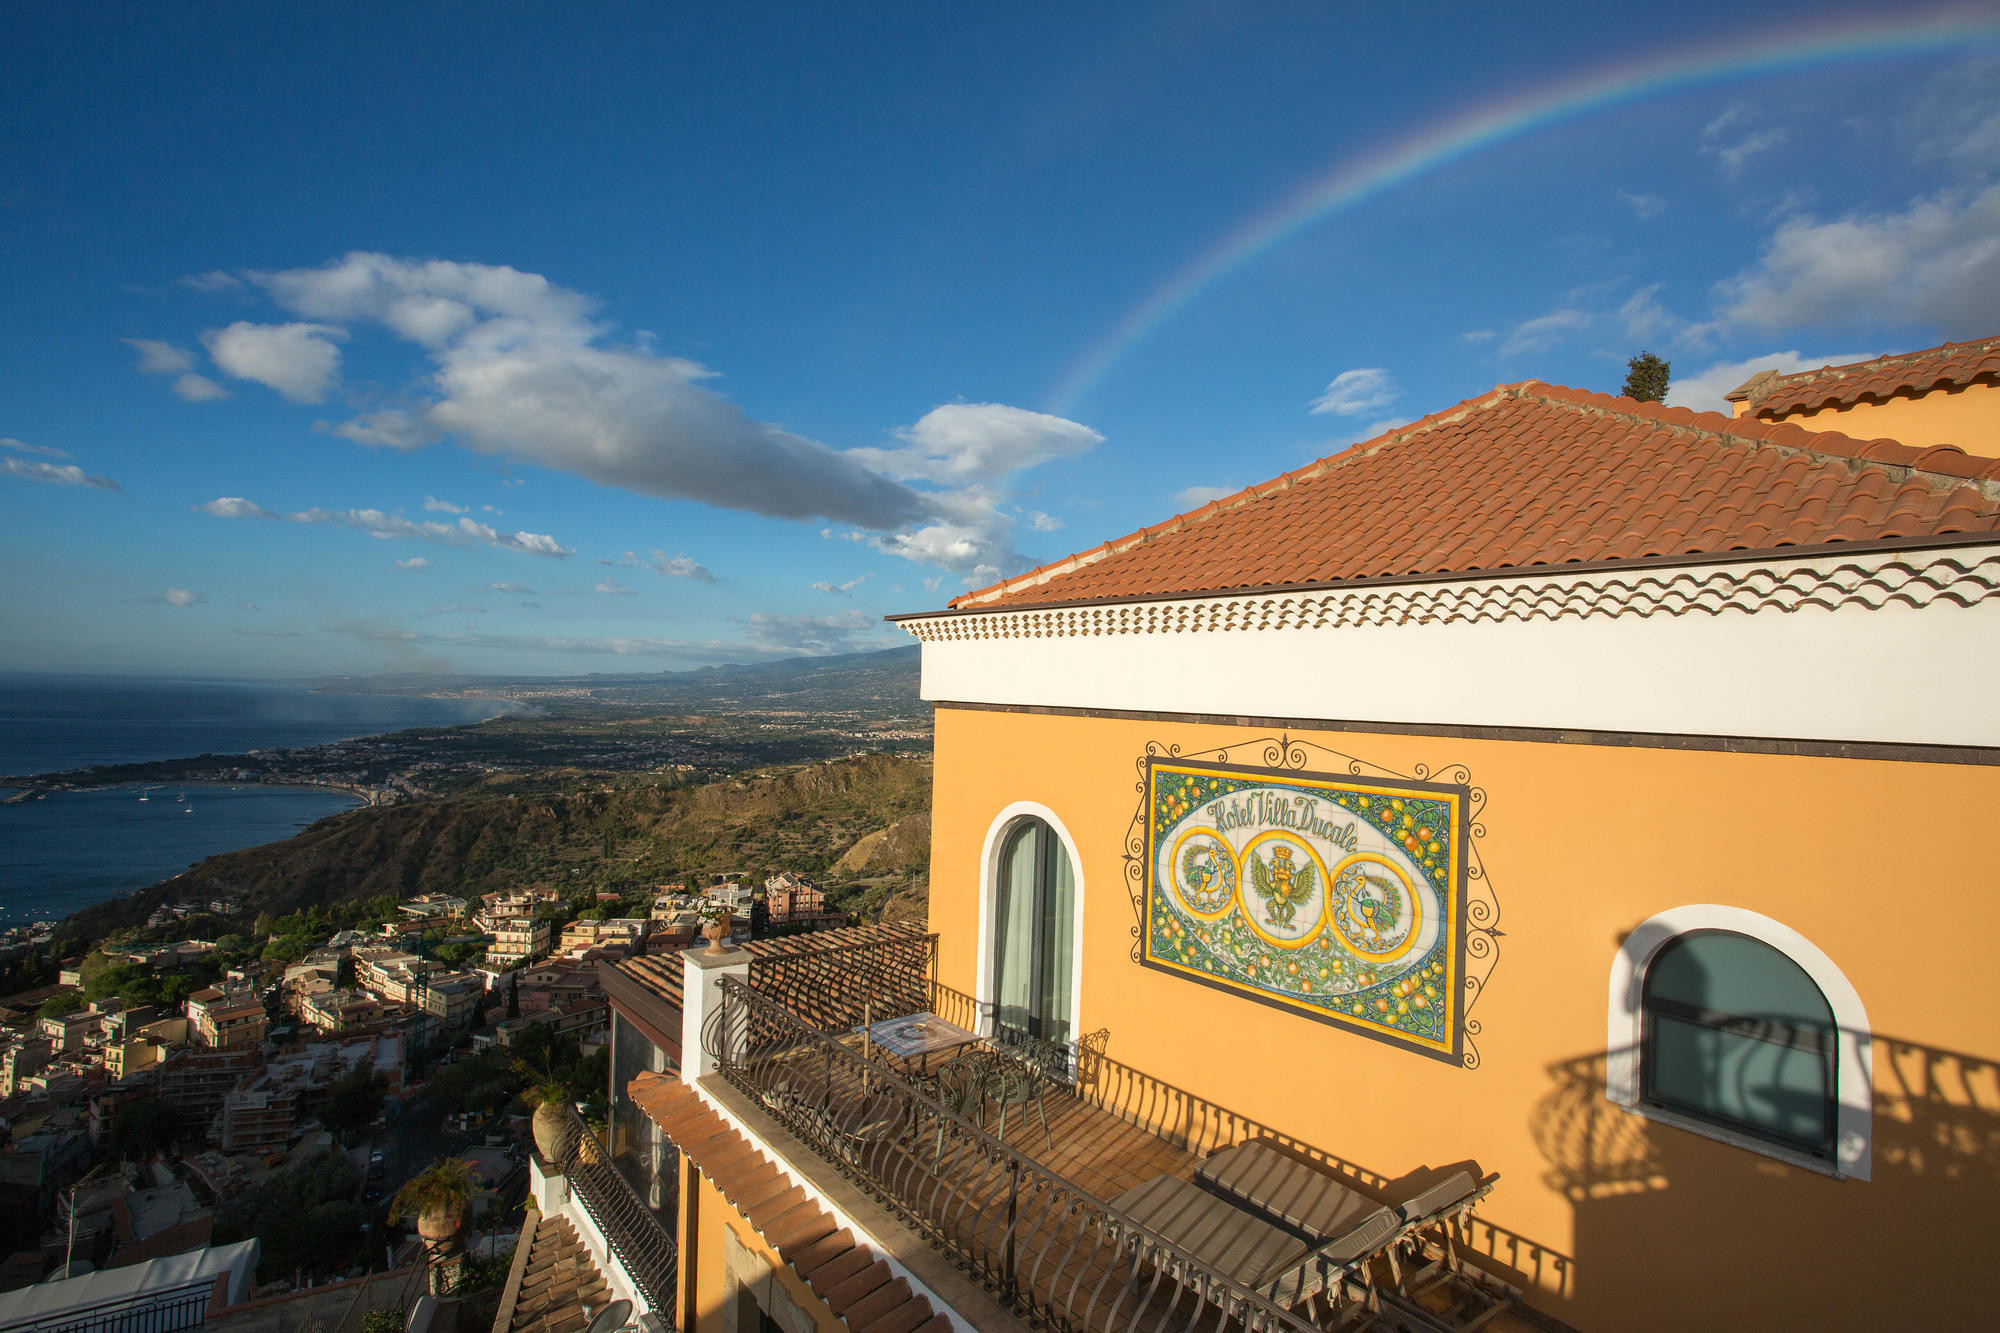 Rainbow over the coastal view from Hotel Villa Ducale in Taormina, Sicily